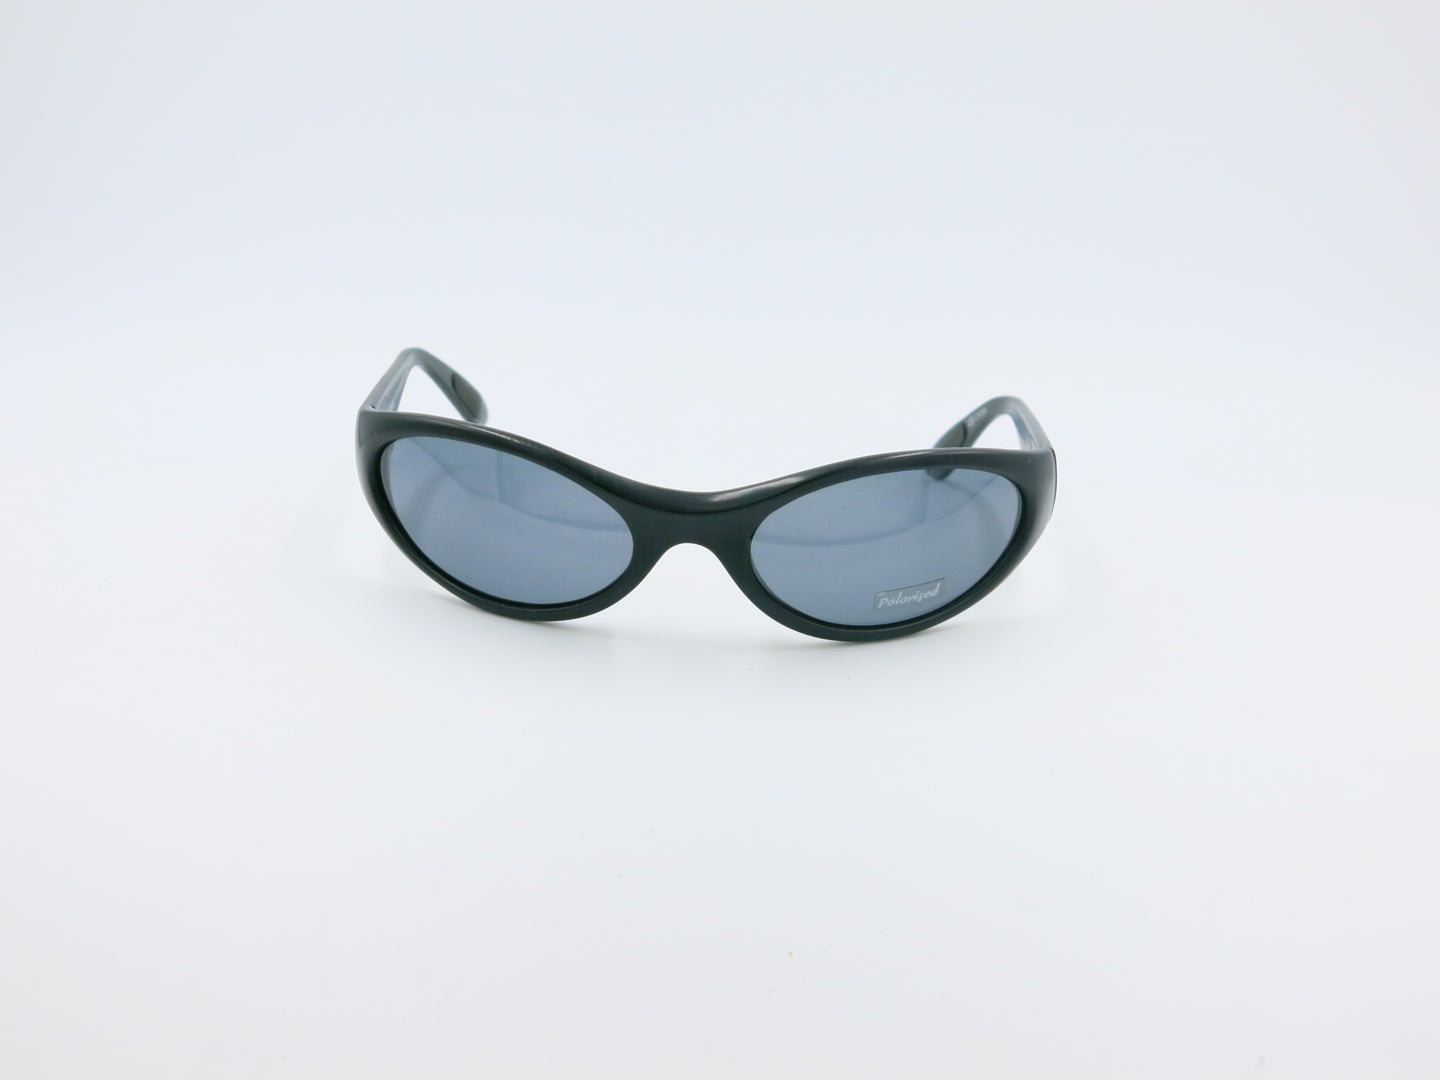 Gargoyles Sunglasses Momentum | Sunglasses by Gargoyles | Friedman & Sons